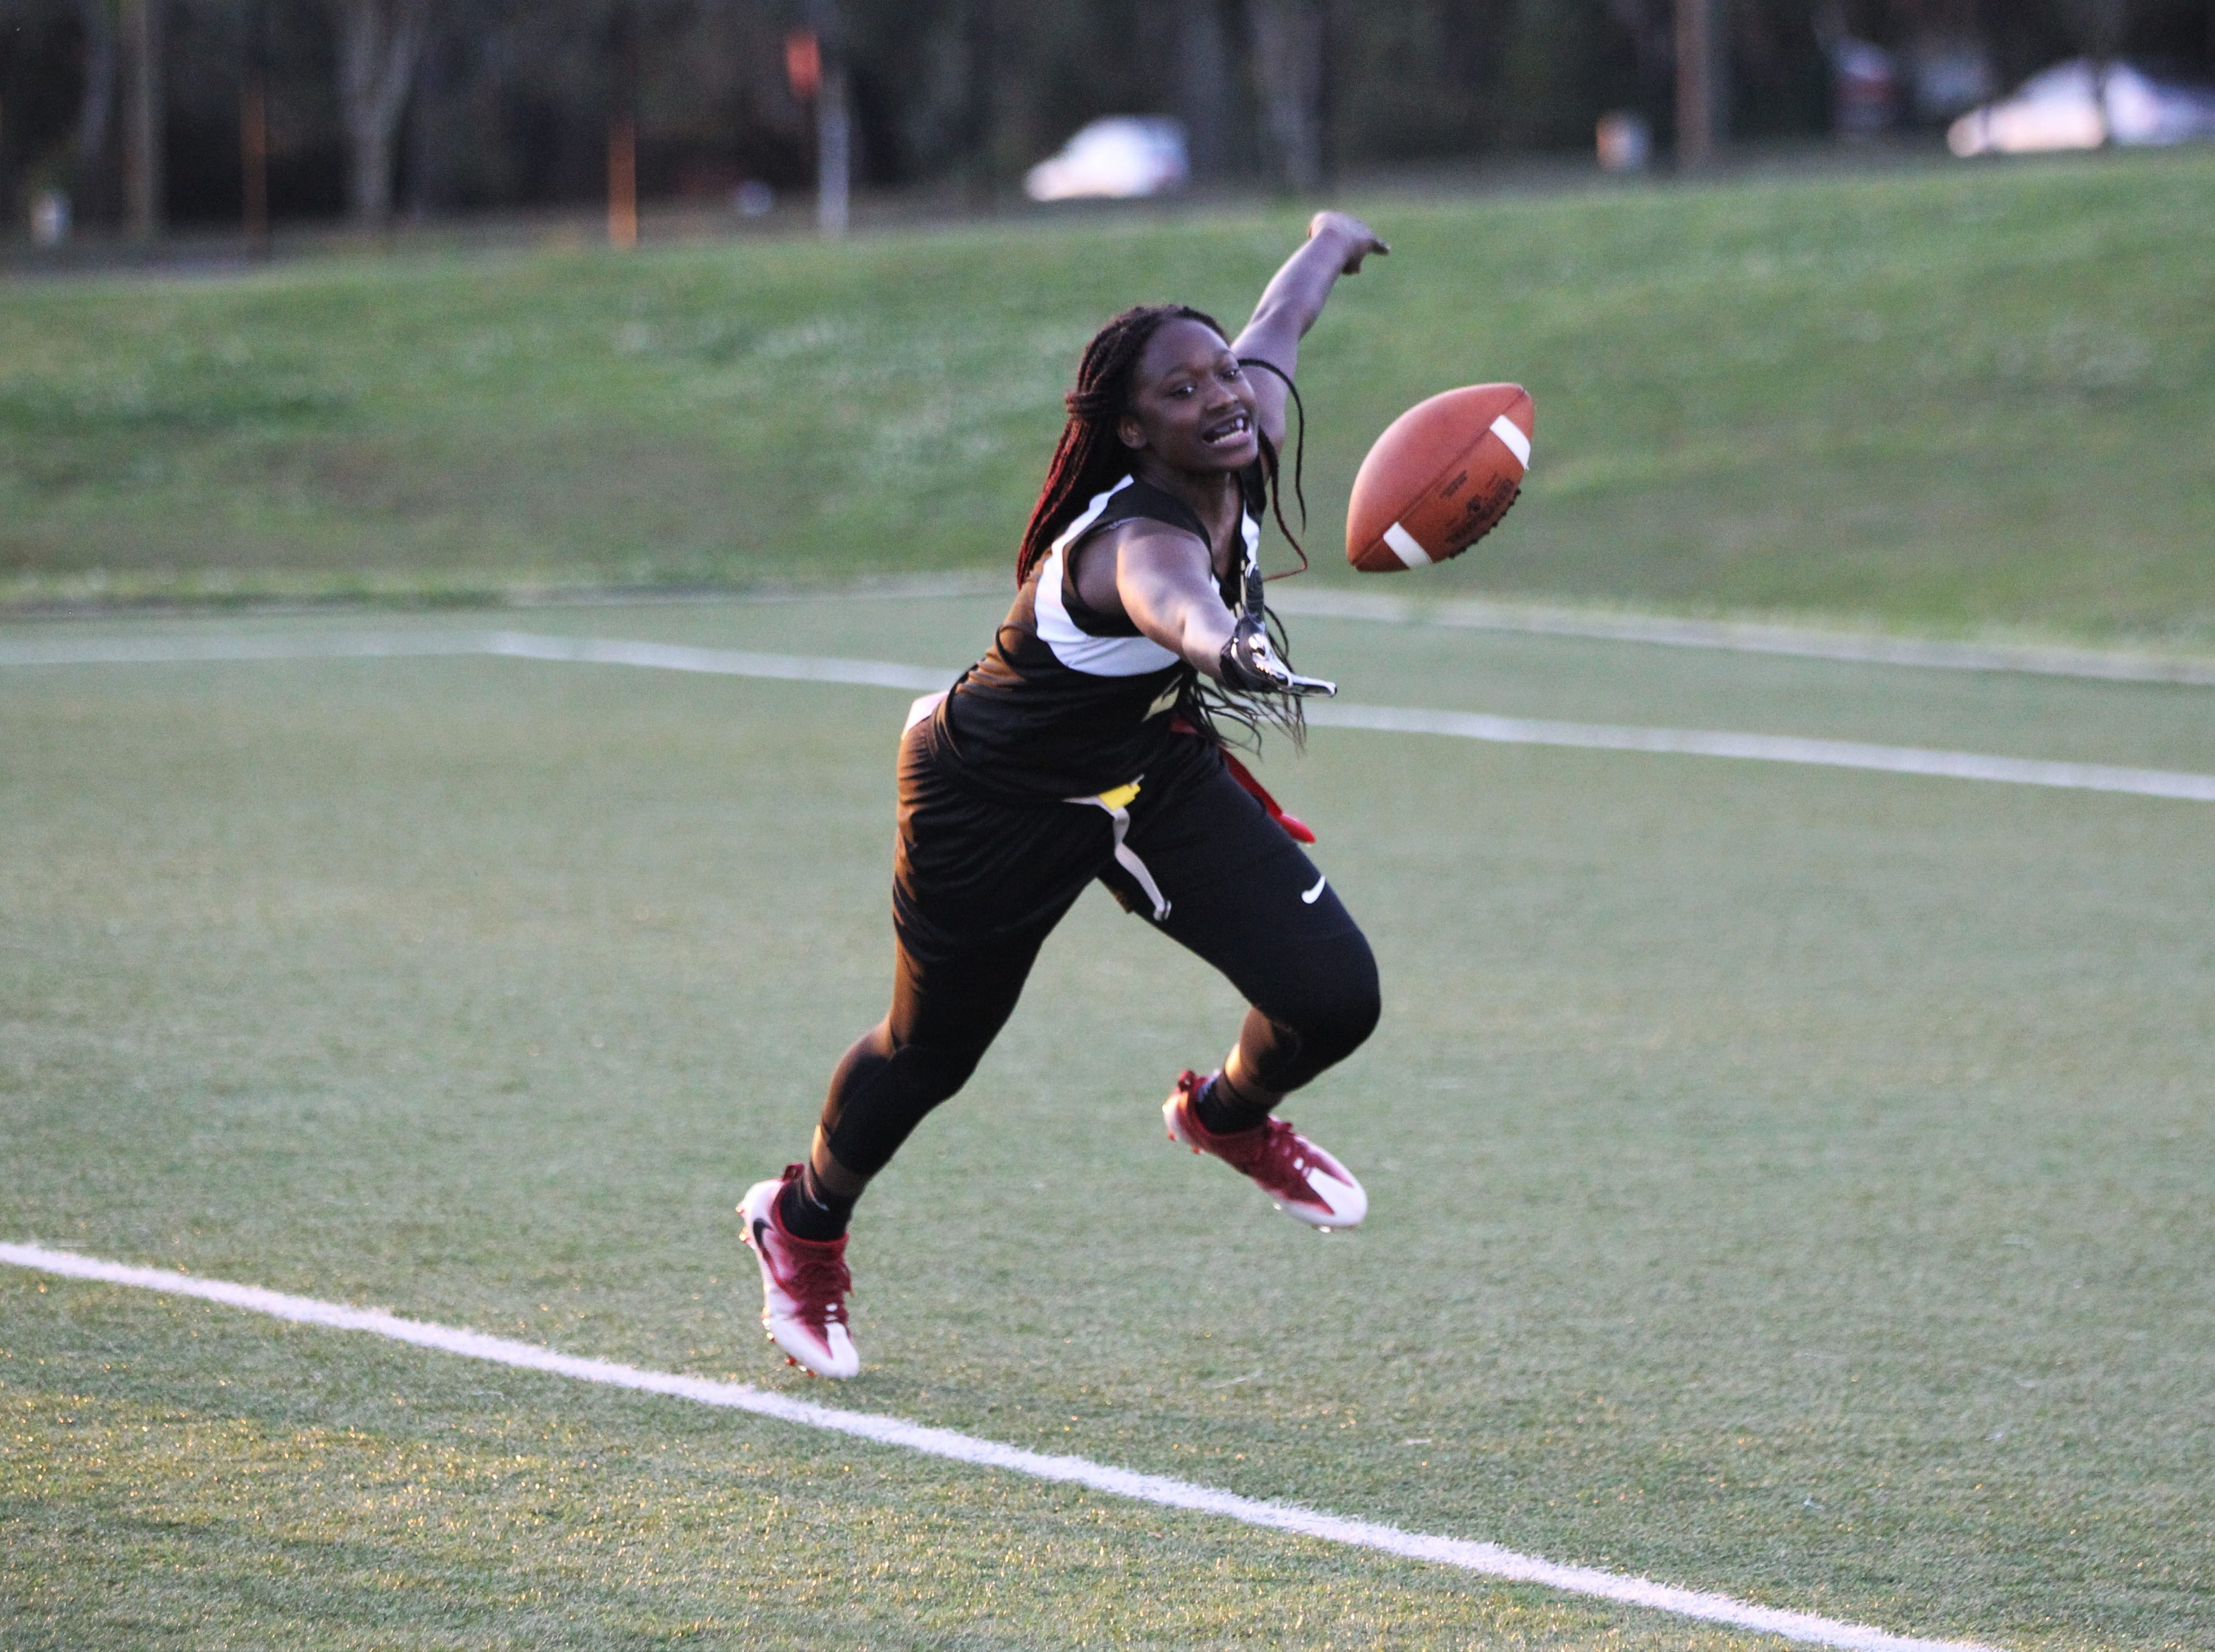 Florida High and Leon play during the 2019 flag football preseason classic at Florida A&M's intramural turf fields on Feb. 27, 2019.